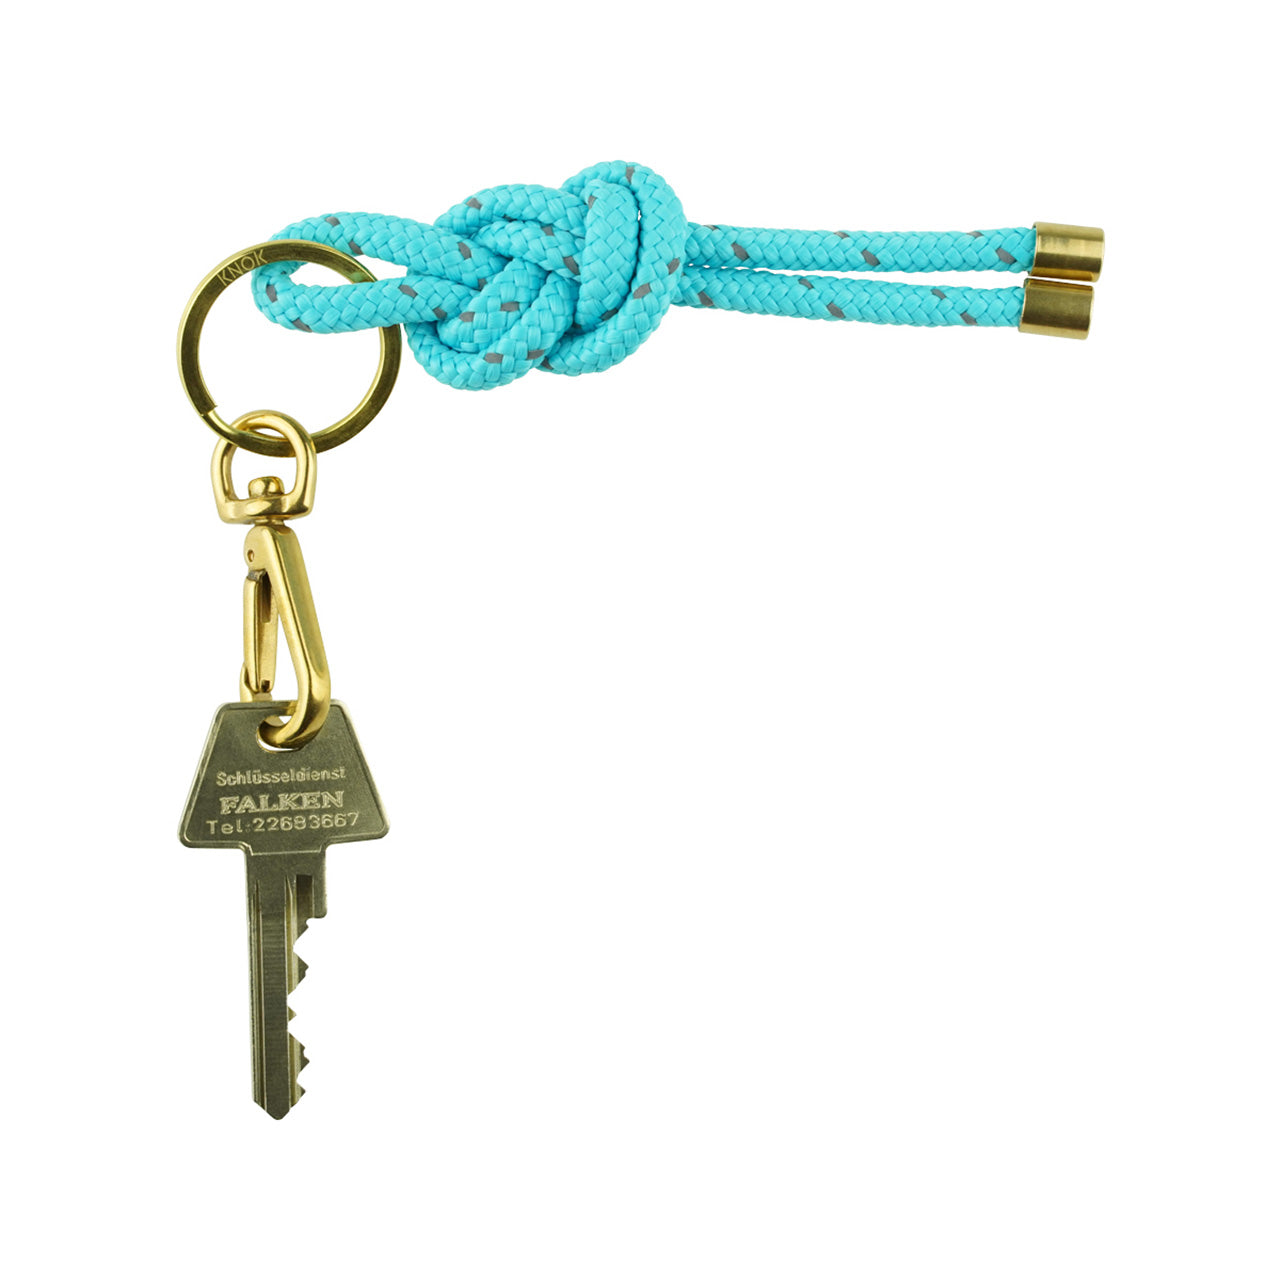 KNOK-KEY-KNOT-TURQUOISE reflect